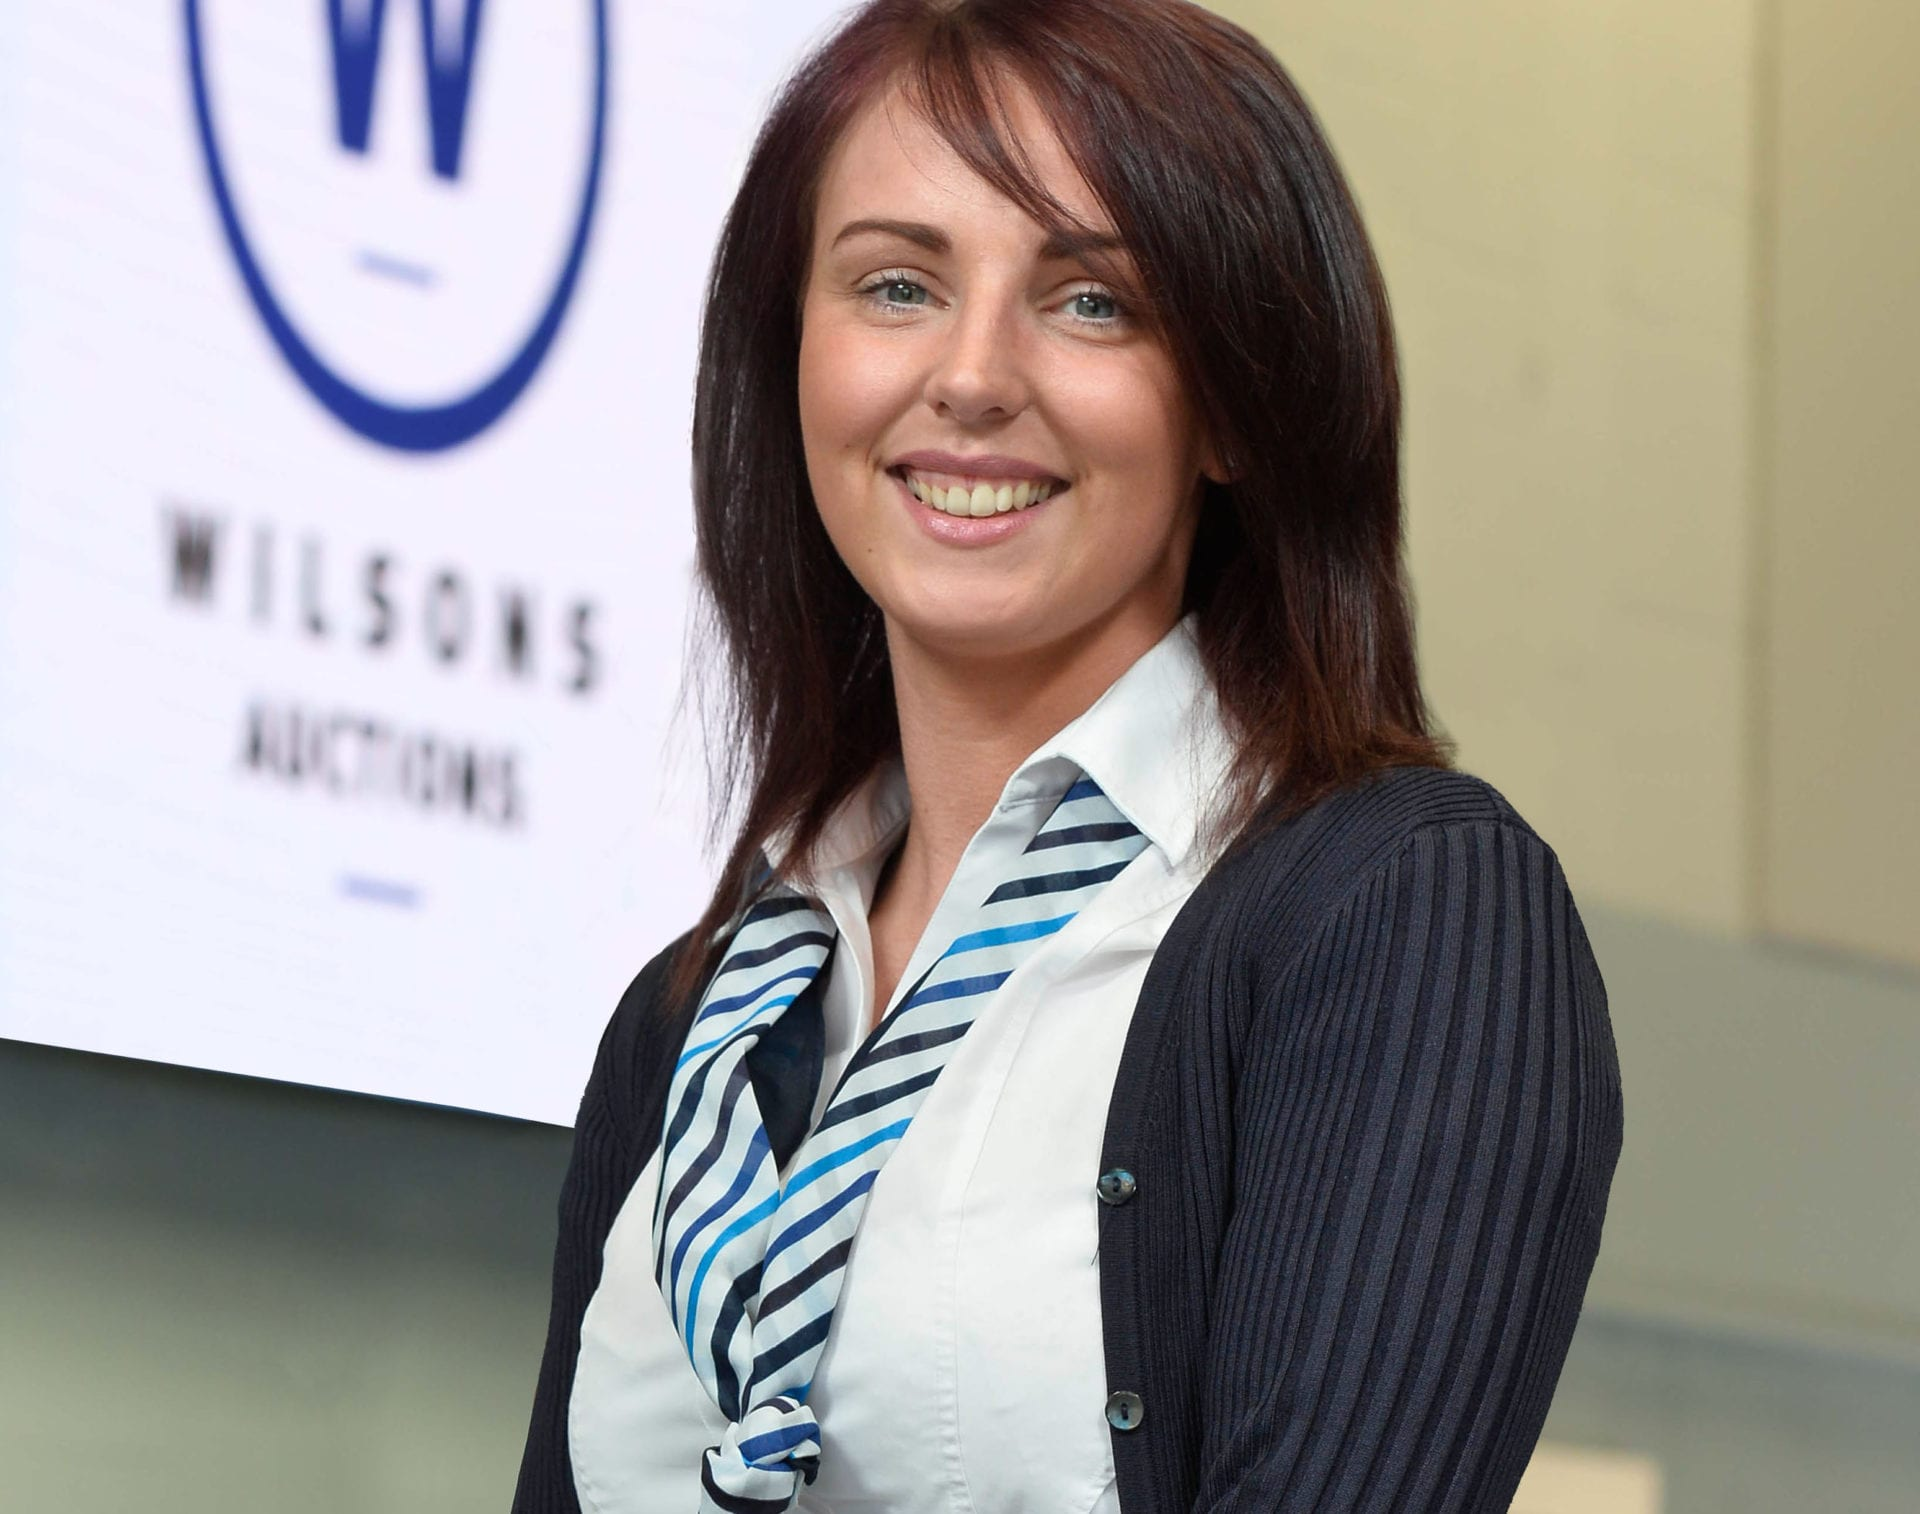 Amber McCullough is the new Auction Support Supervisor at Wilsons Auctions